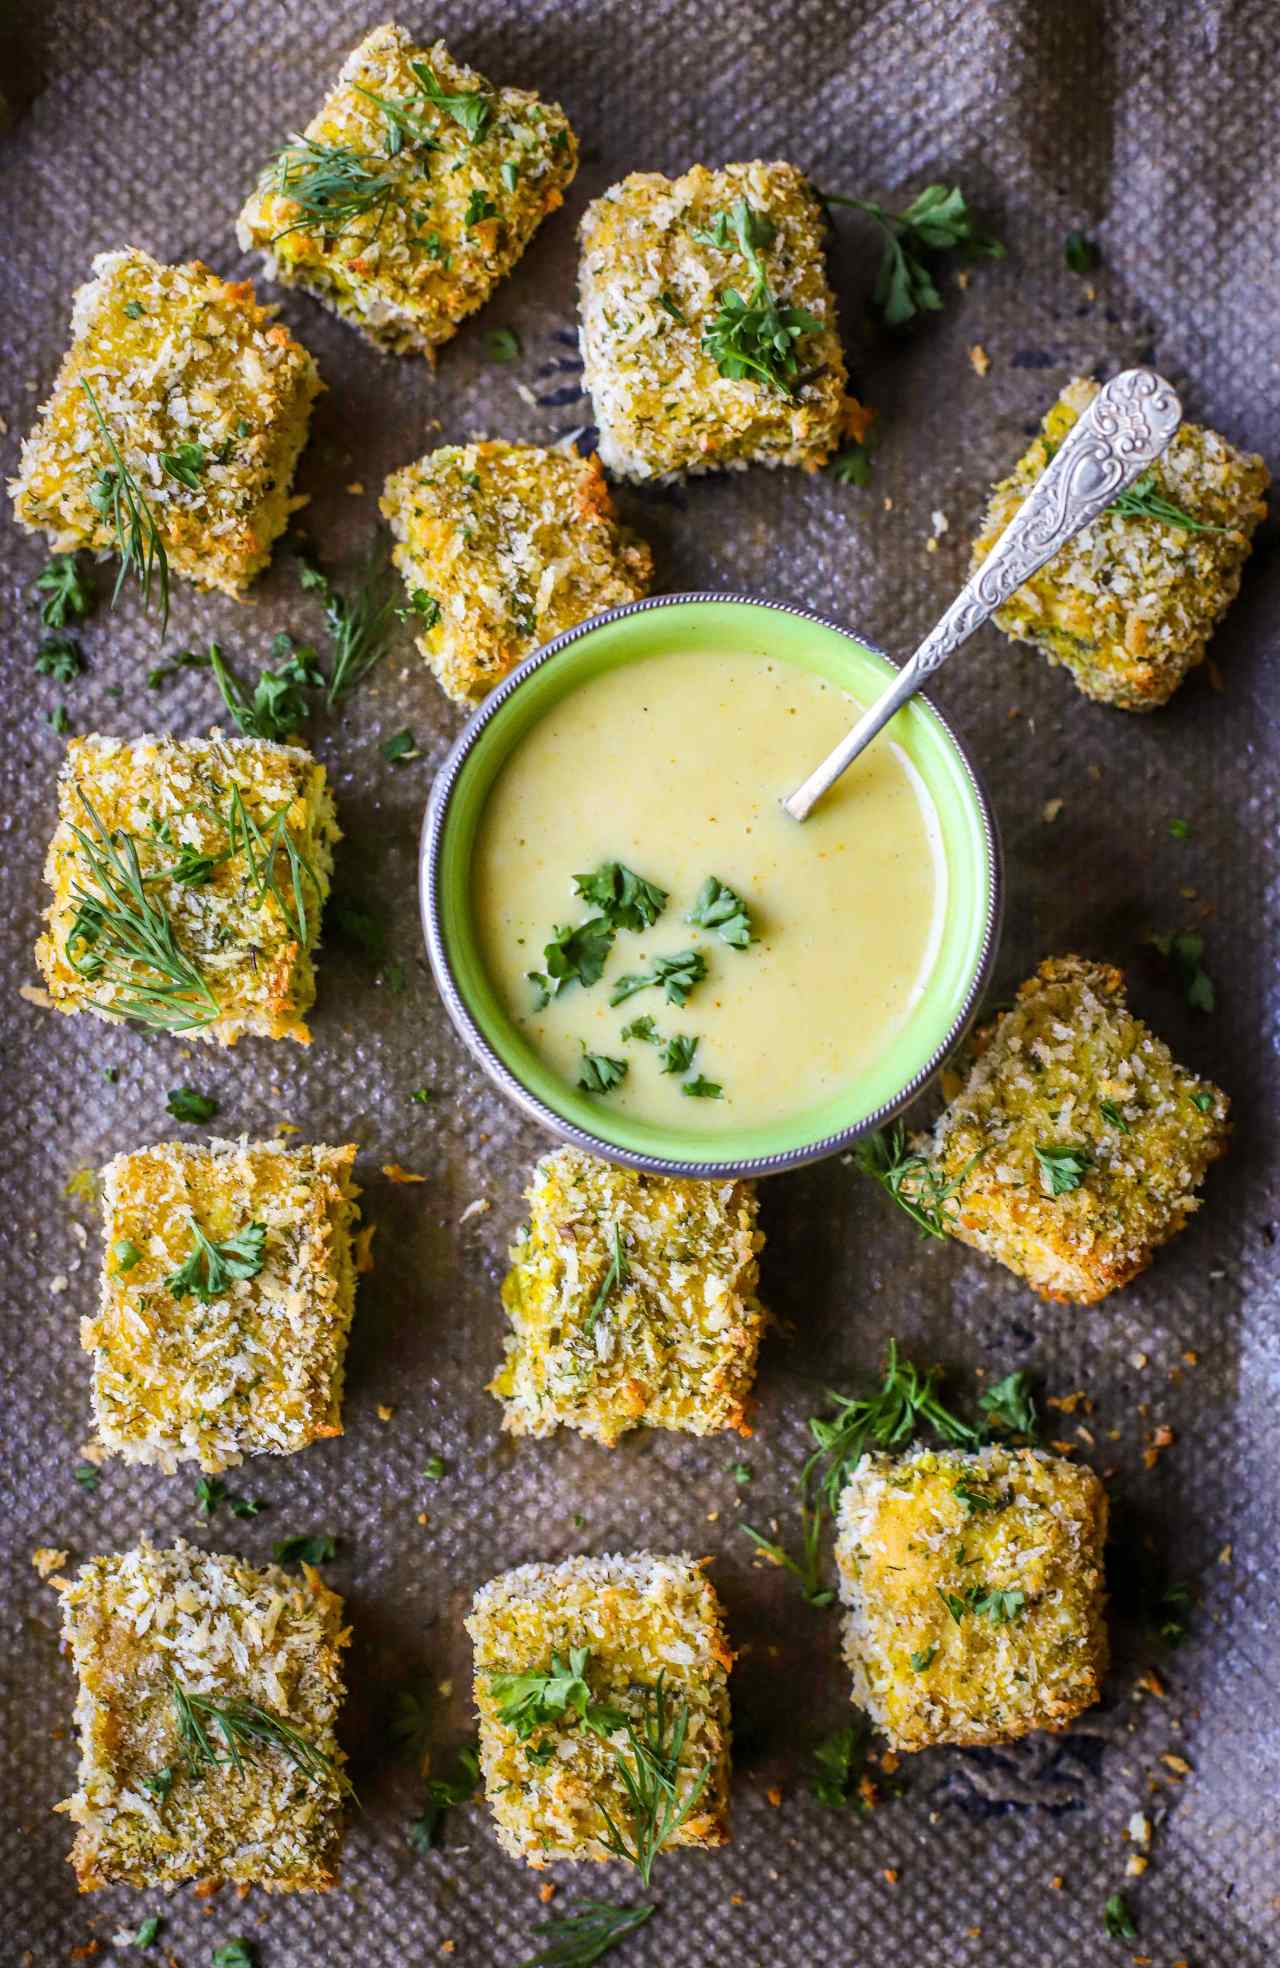 """Pop these crispy baked #tofu """"chicken-style"""" #nuggets in a sandwich, on your favourite salad, or dip them in my easy maple-mustard sauce. These versatile little #vegan bites are utterly delectable any way you eat them, and super easy to make! An #easy, nutritious, #family- and #party-friendly #recipe."""